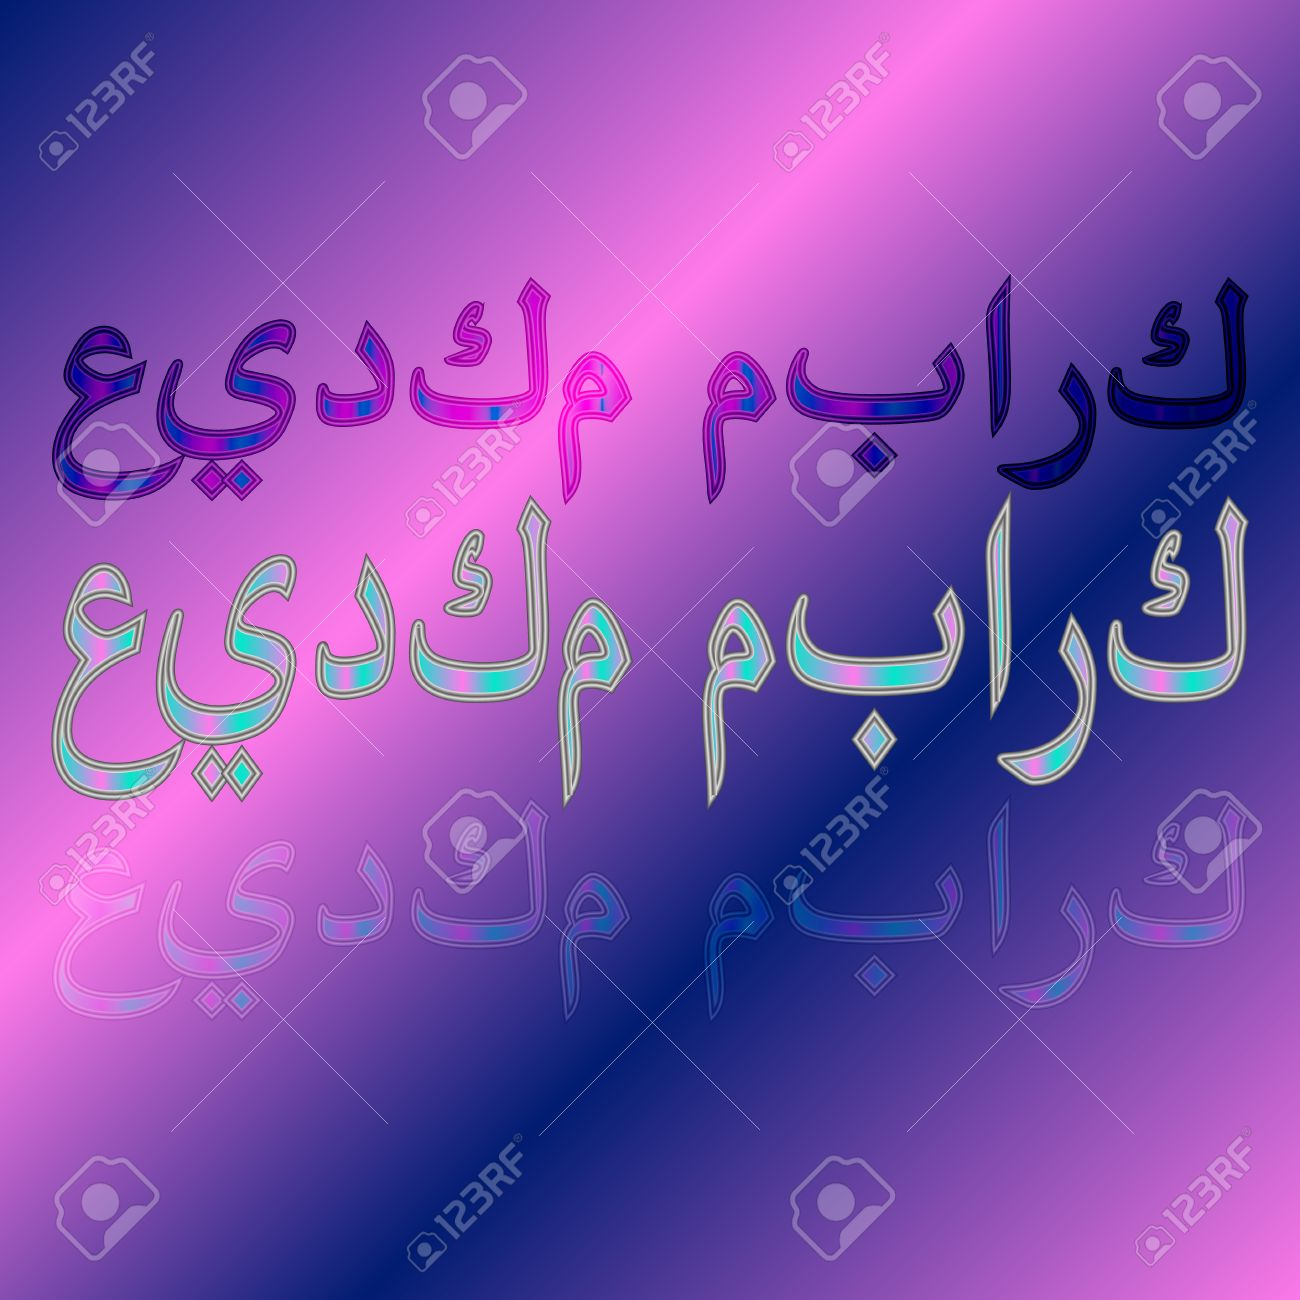 Arabic Greeting Text Of Eid Mubarak Calligraphical Lettering